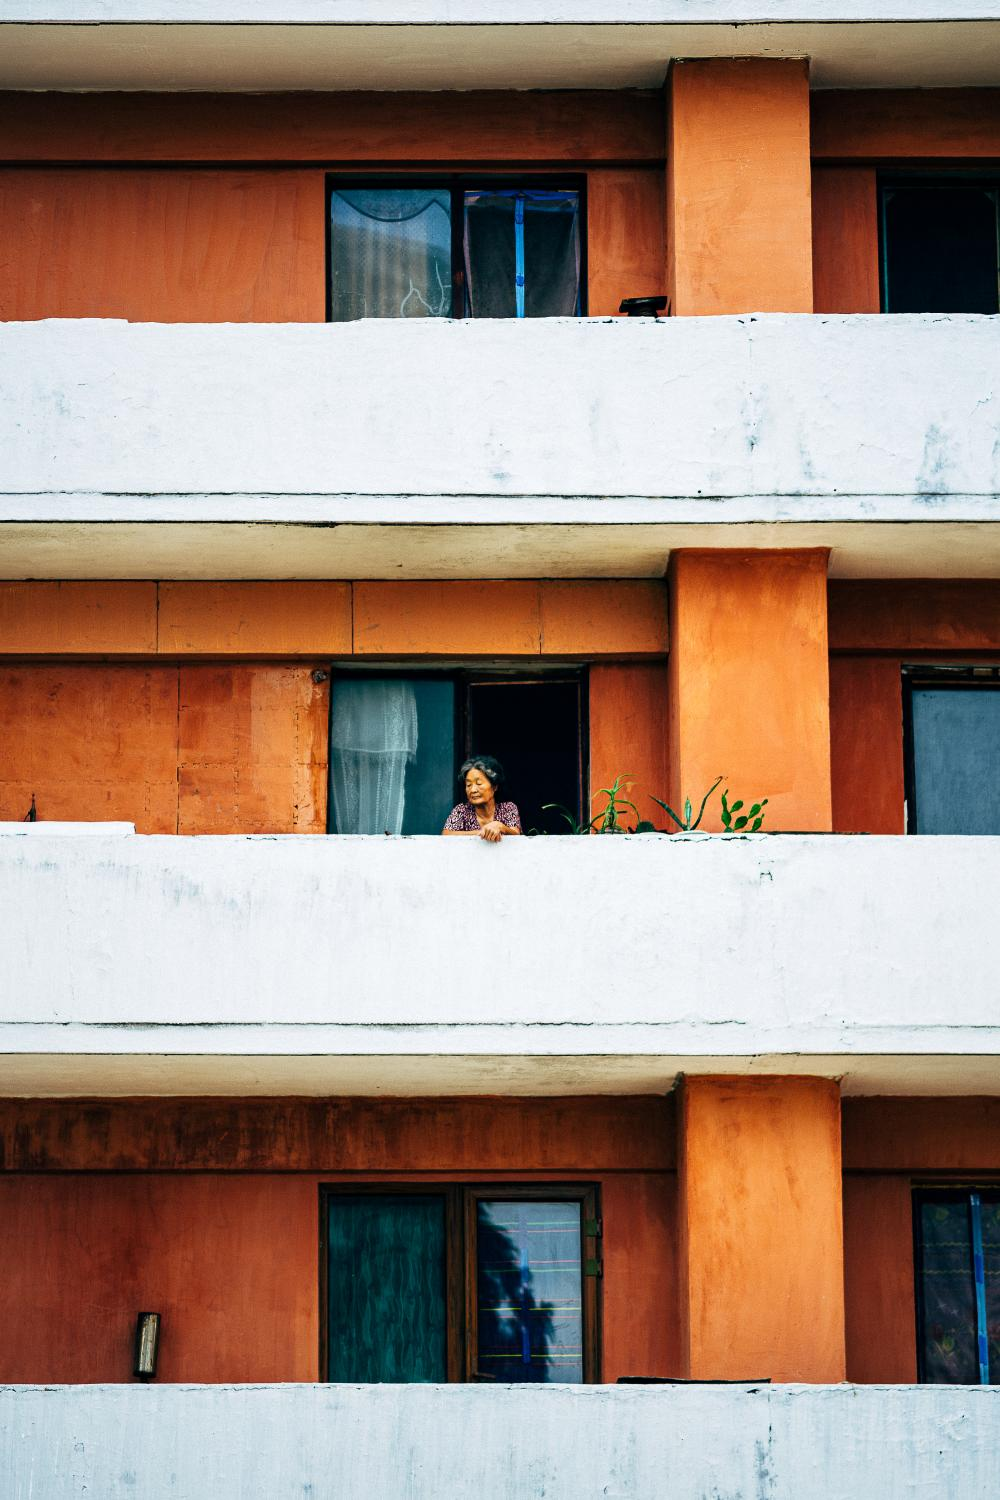 Art and Documentary Photography - Loading Joe_Hockley_Apartment_building__Pyongyang_North_Korea.jpg